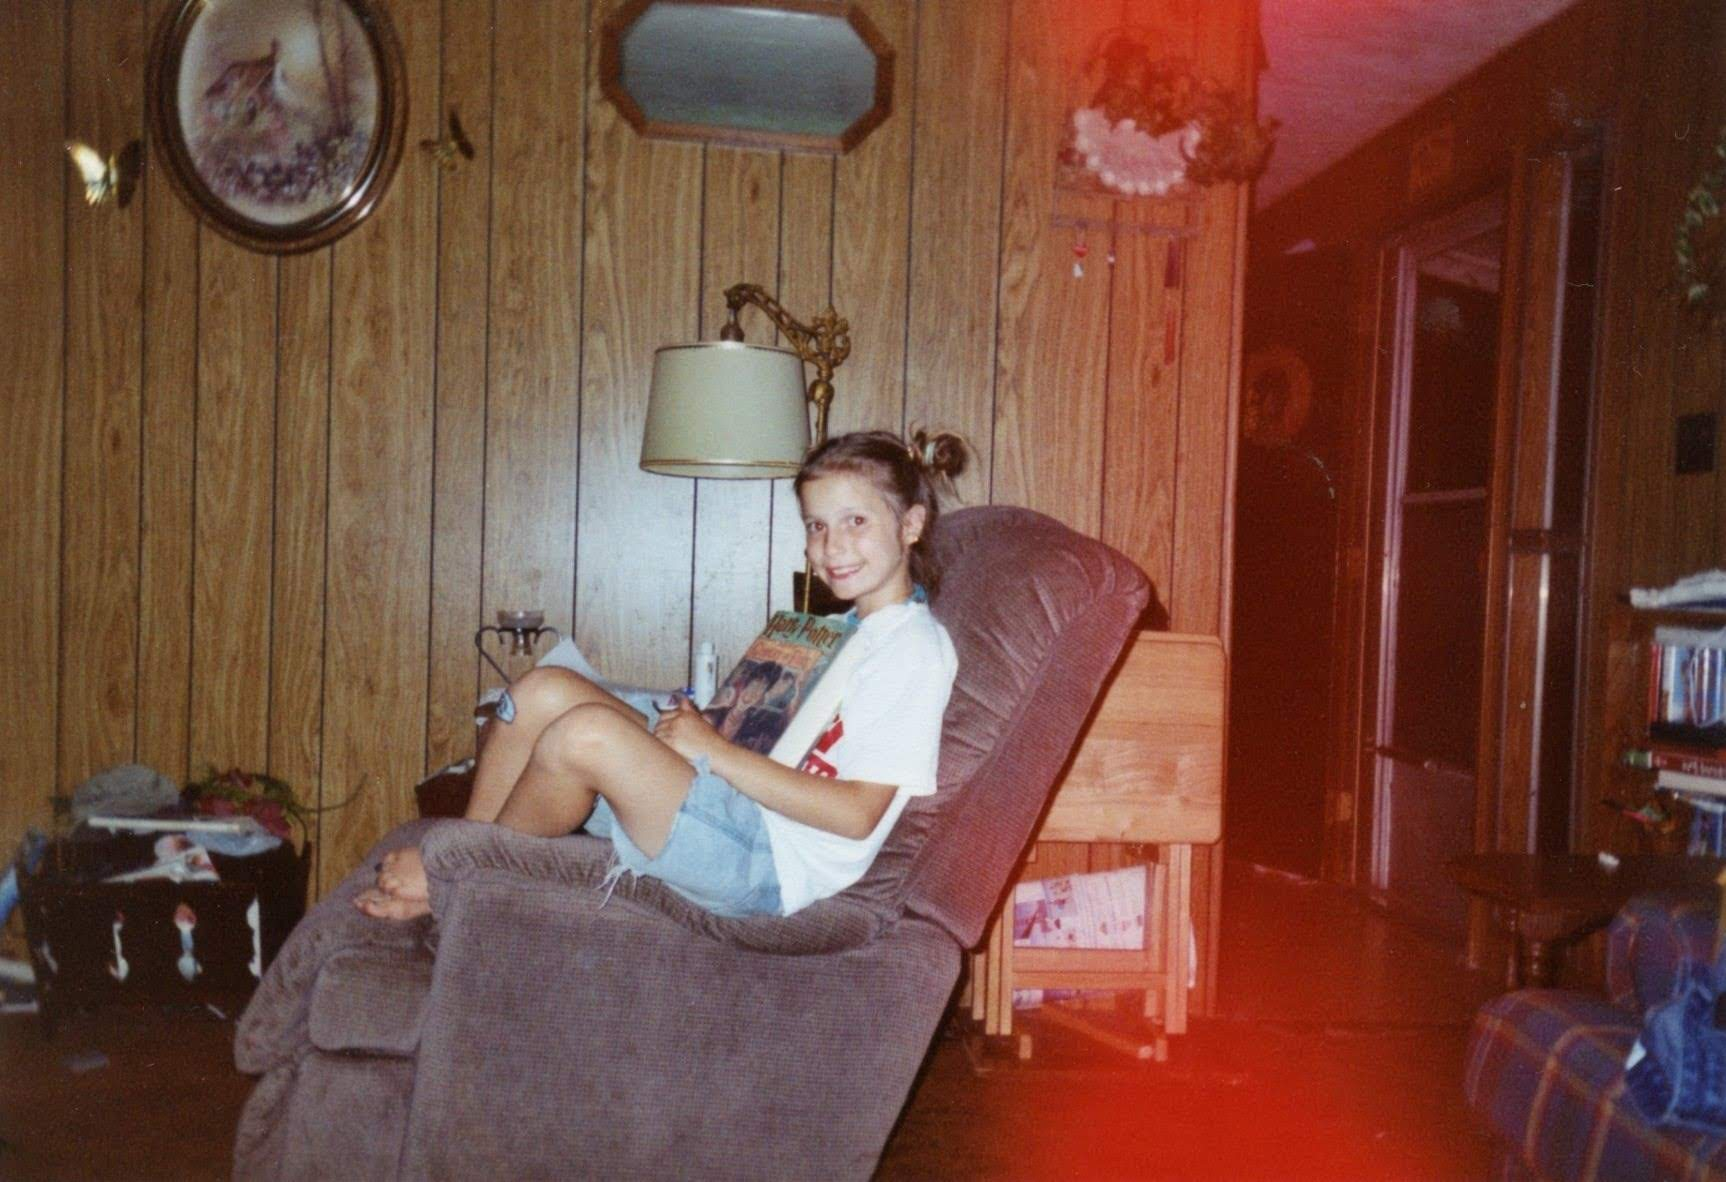 9-year-old me reading  Harry Potter and the Goblet of Fire  for the first time. This photo also stands as evidence that I started sitting on chairs in odd ways very young.